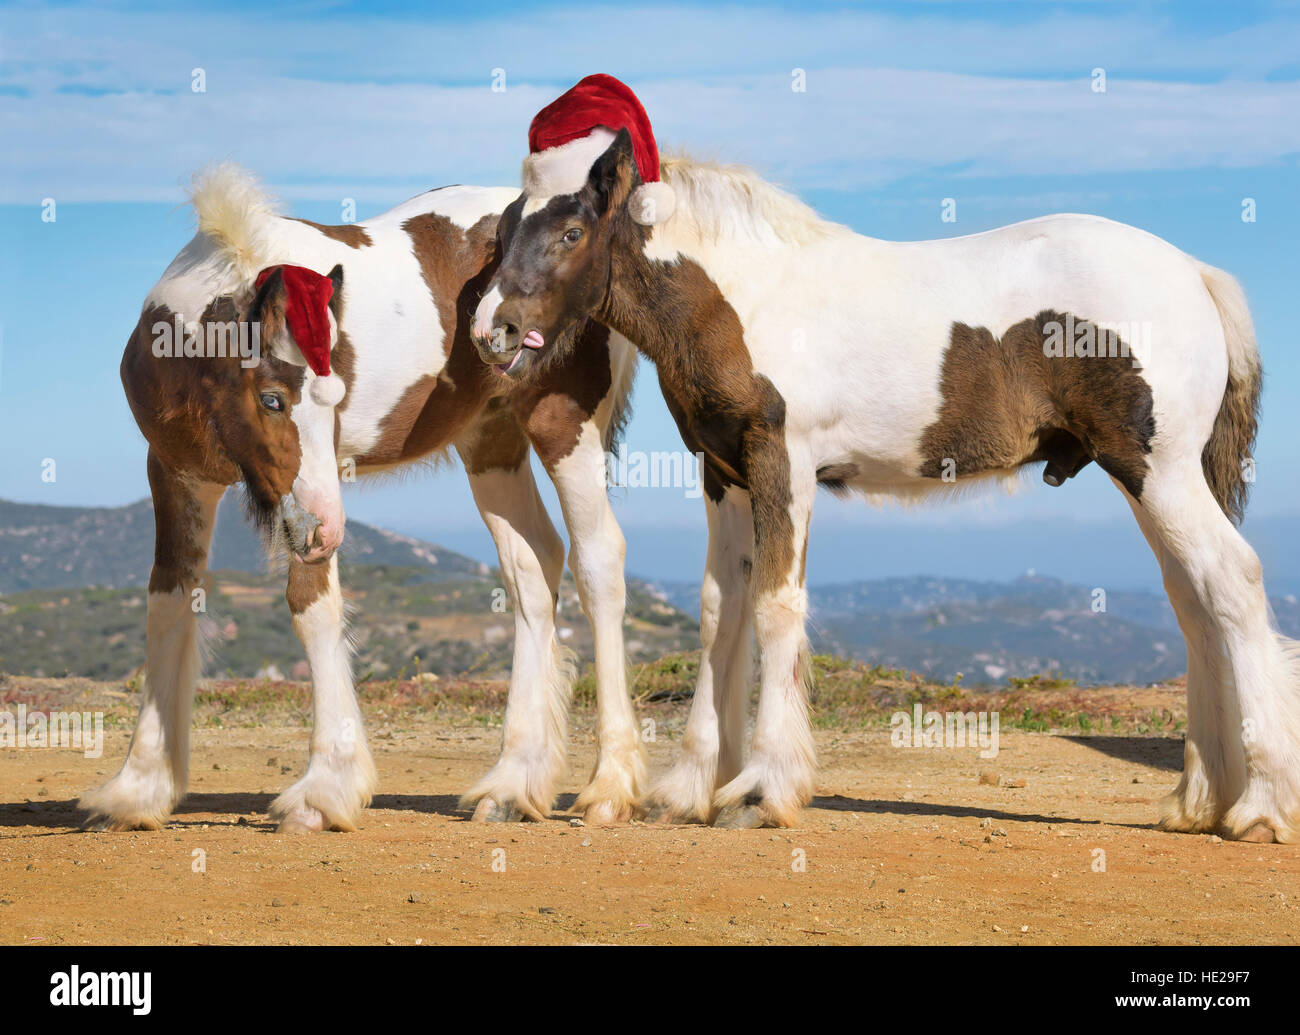 Gypsy Vanner Horse colt and filly wearing Christmas hats - Stock Image